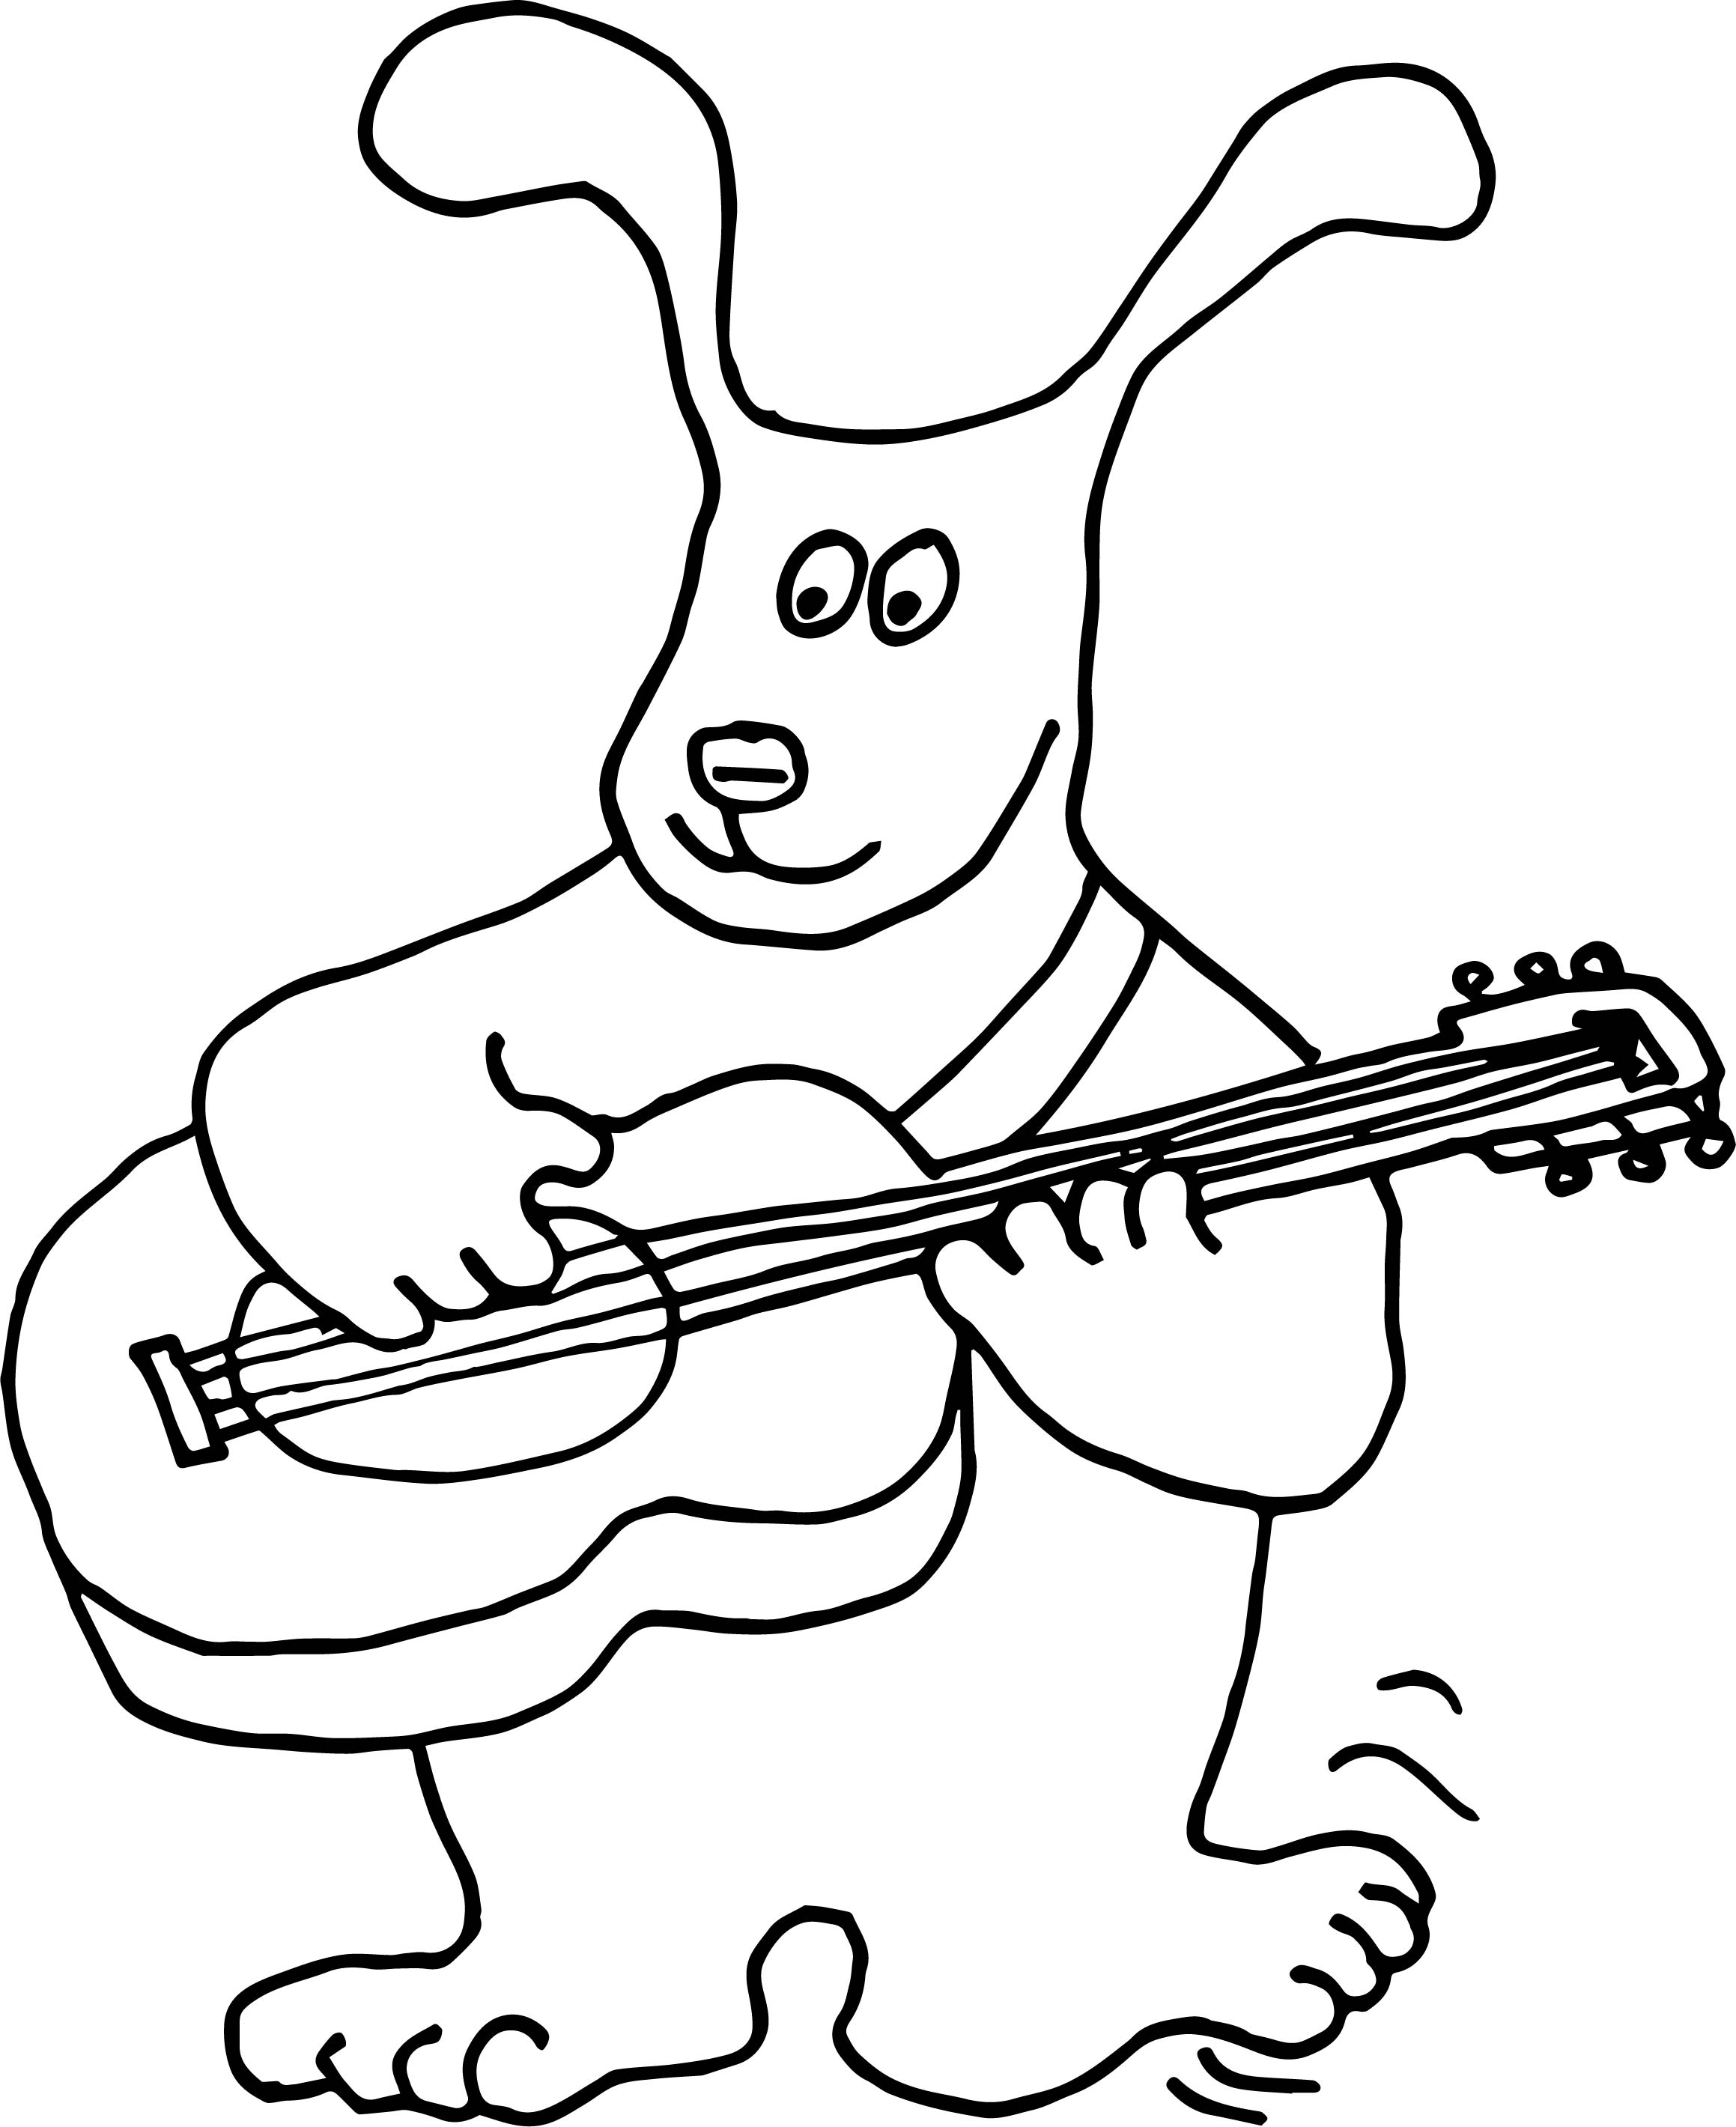 Puppy Dog Guitar Coloring Page